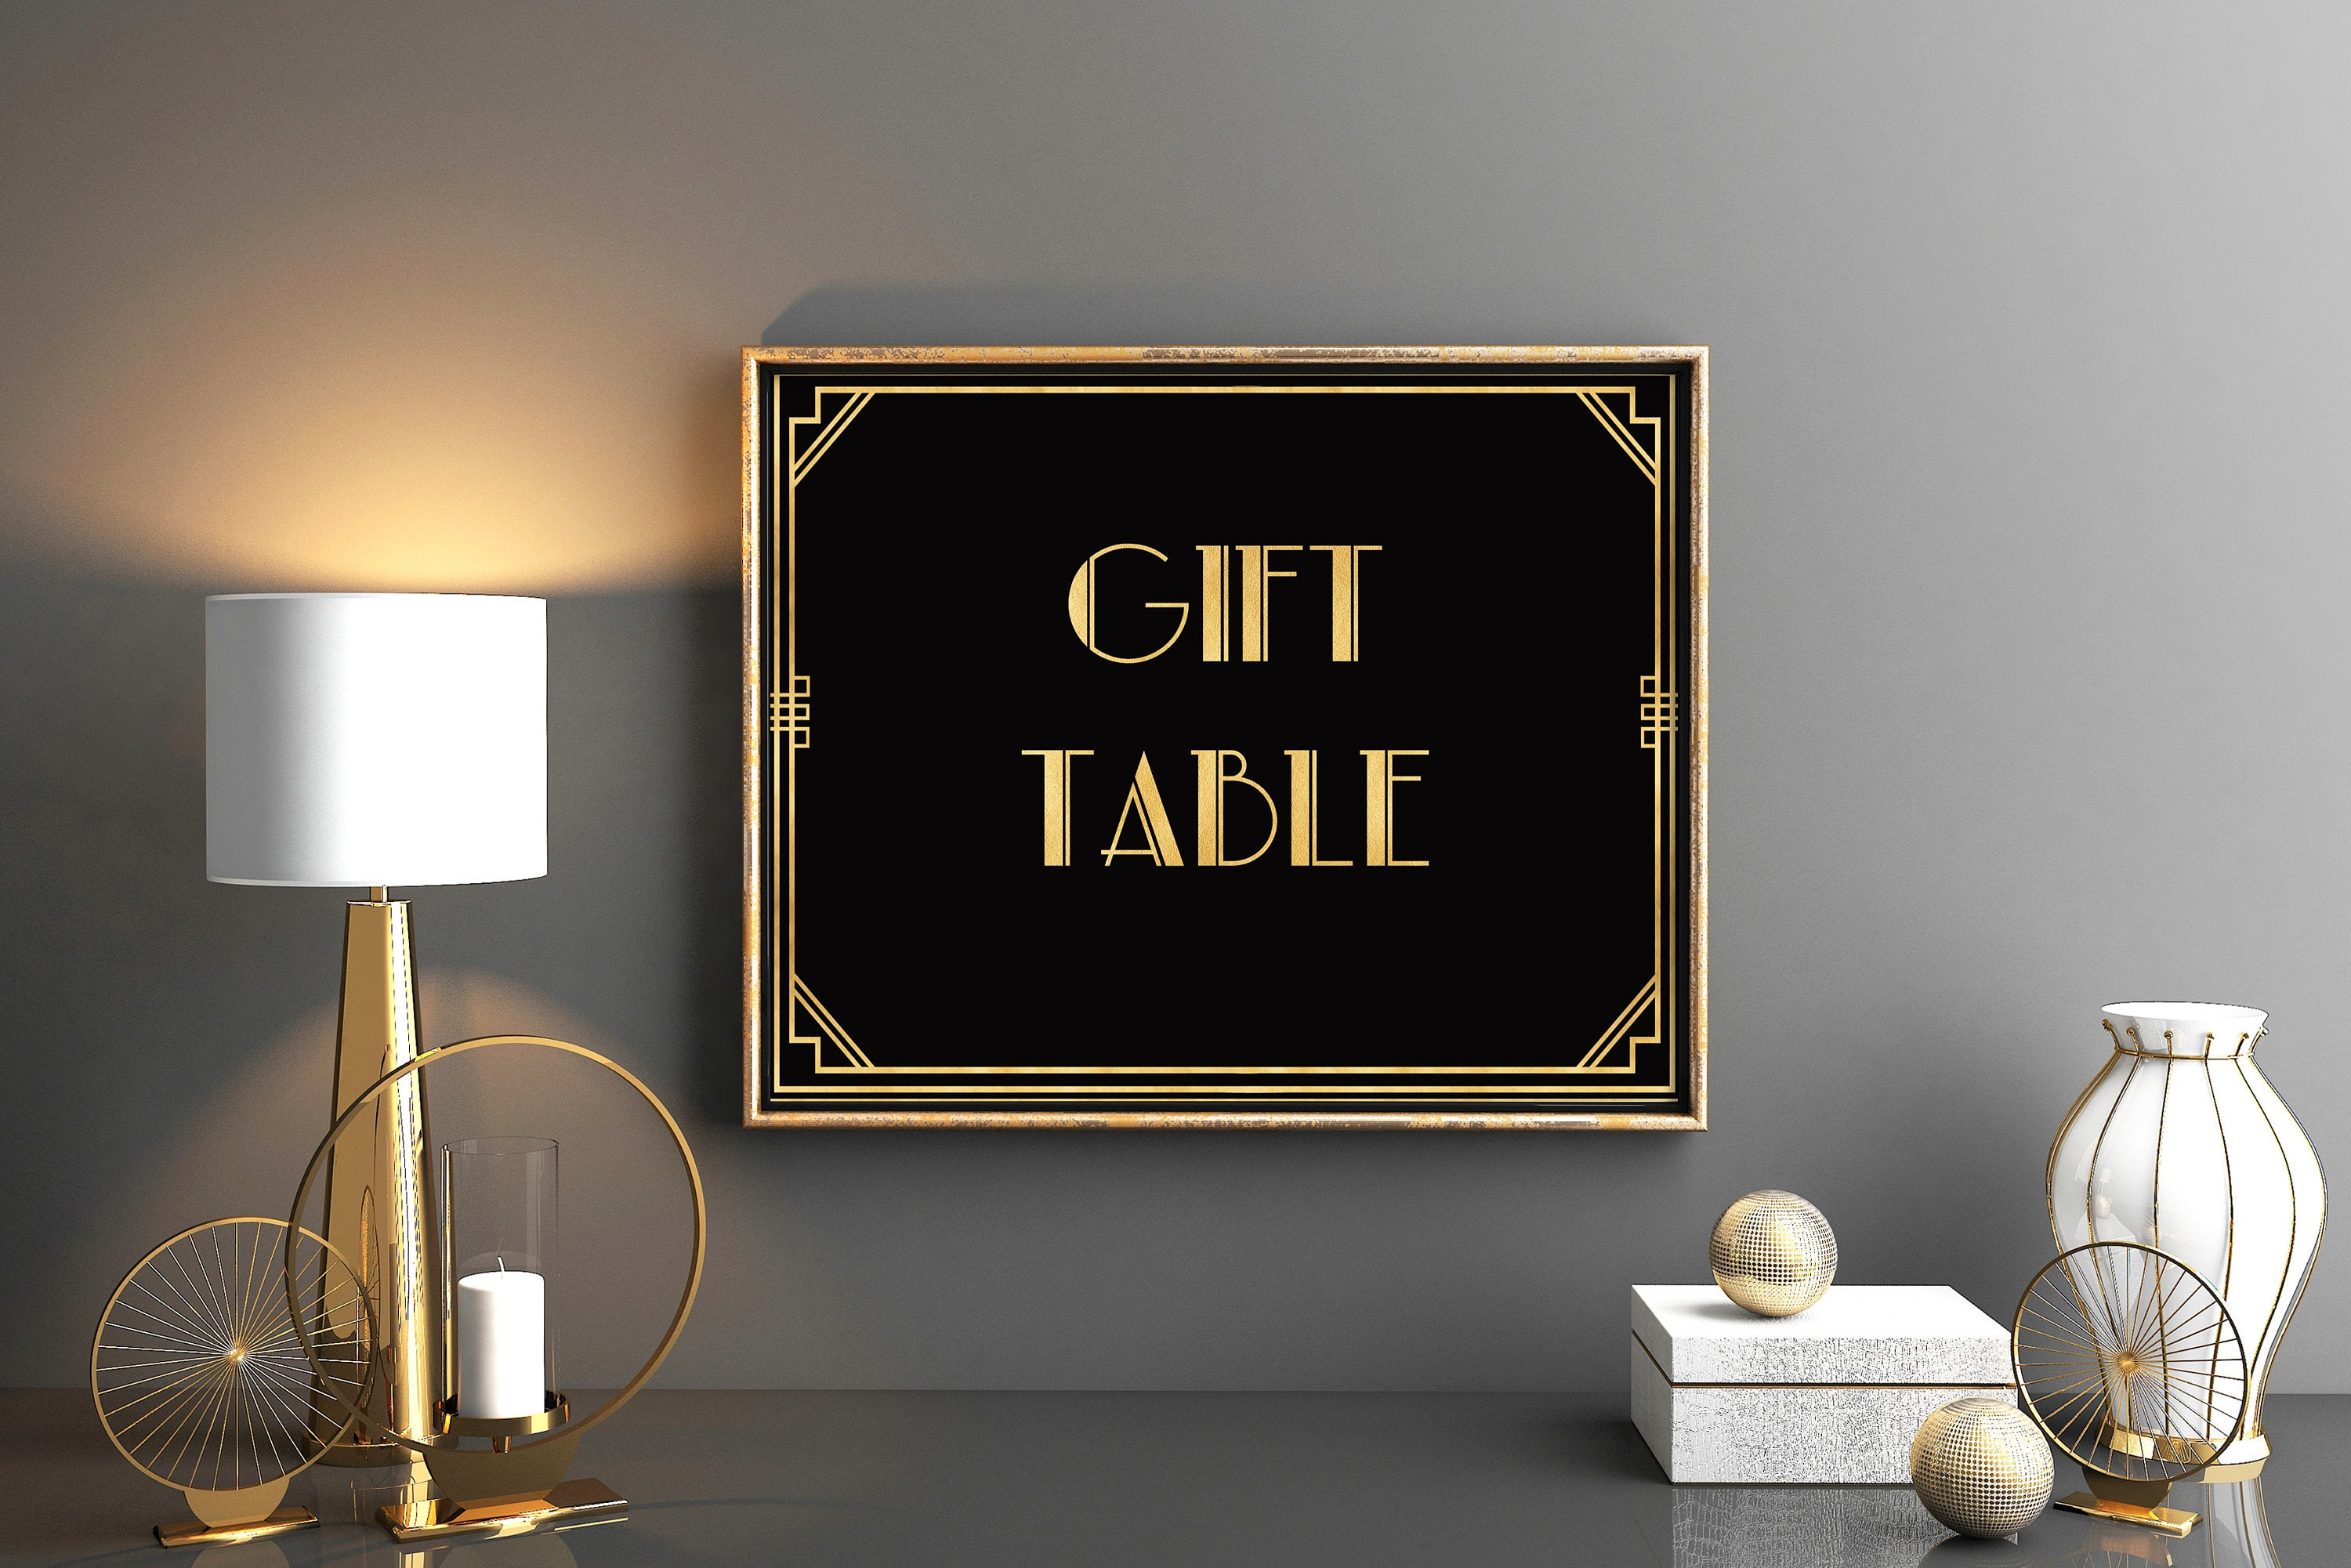 The great gatsby decoration gift table sign gold and black zoom jeuxipadfo Image collections